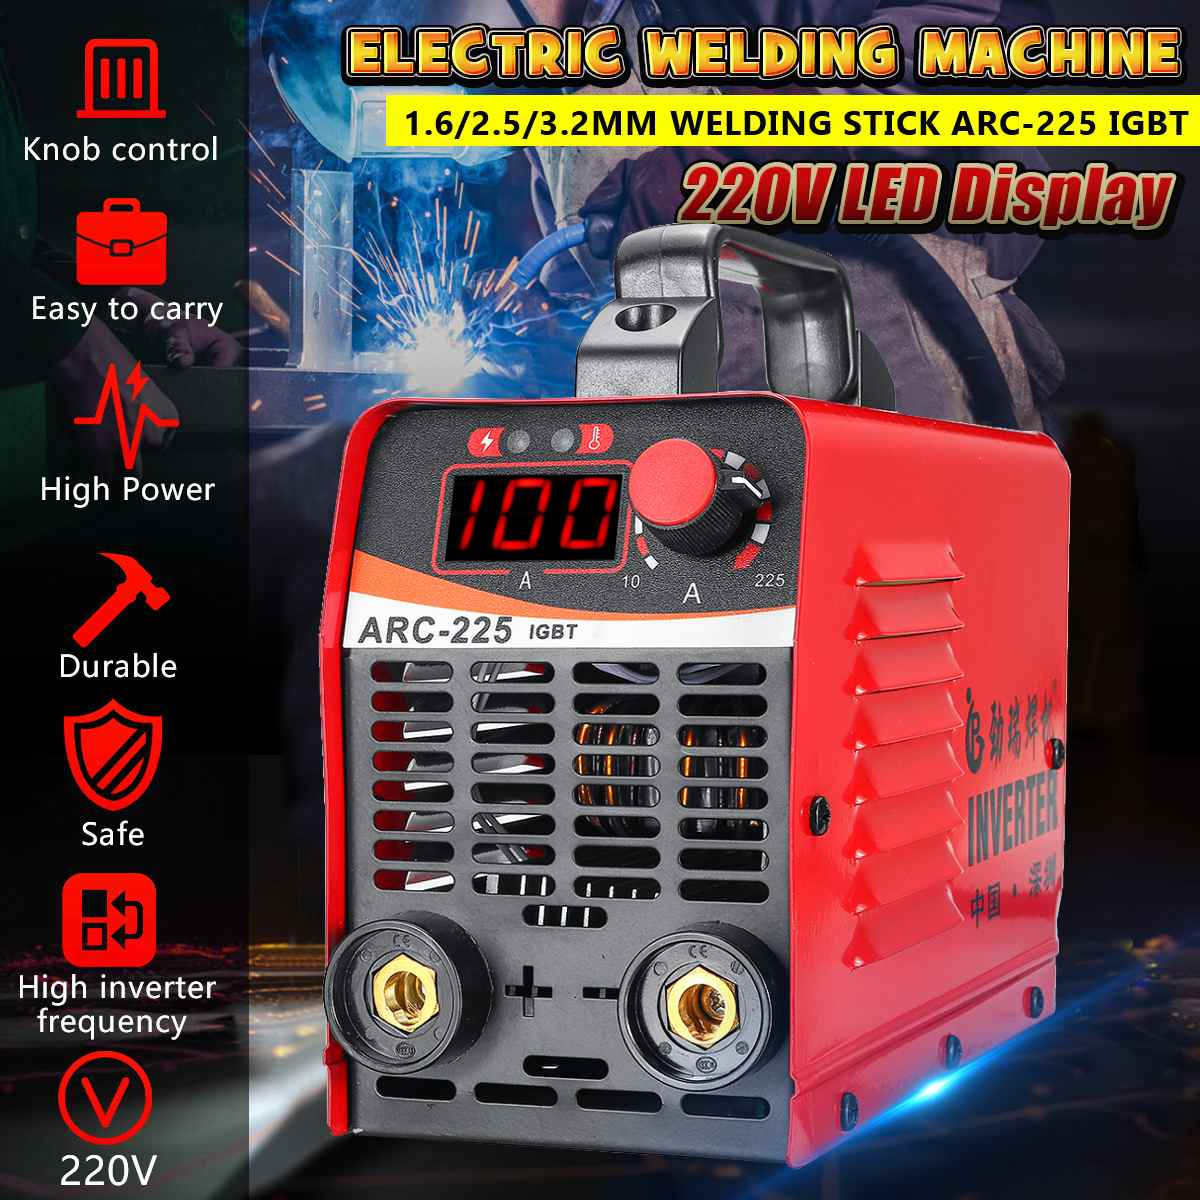 Upgraded 10-225A ARC-225 IGBT Copper Electric Welding Machine MMA Portable Welding Inverter With Digita Display